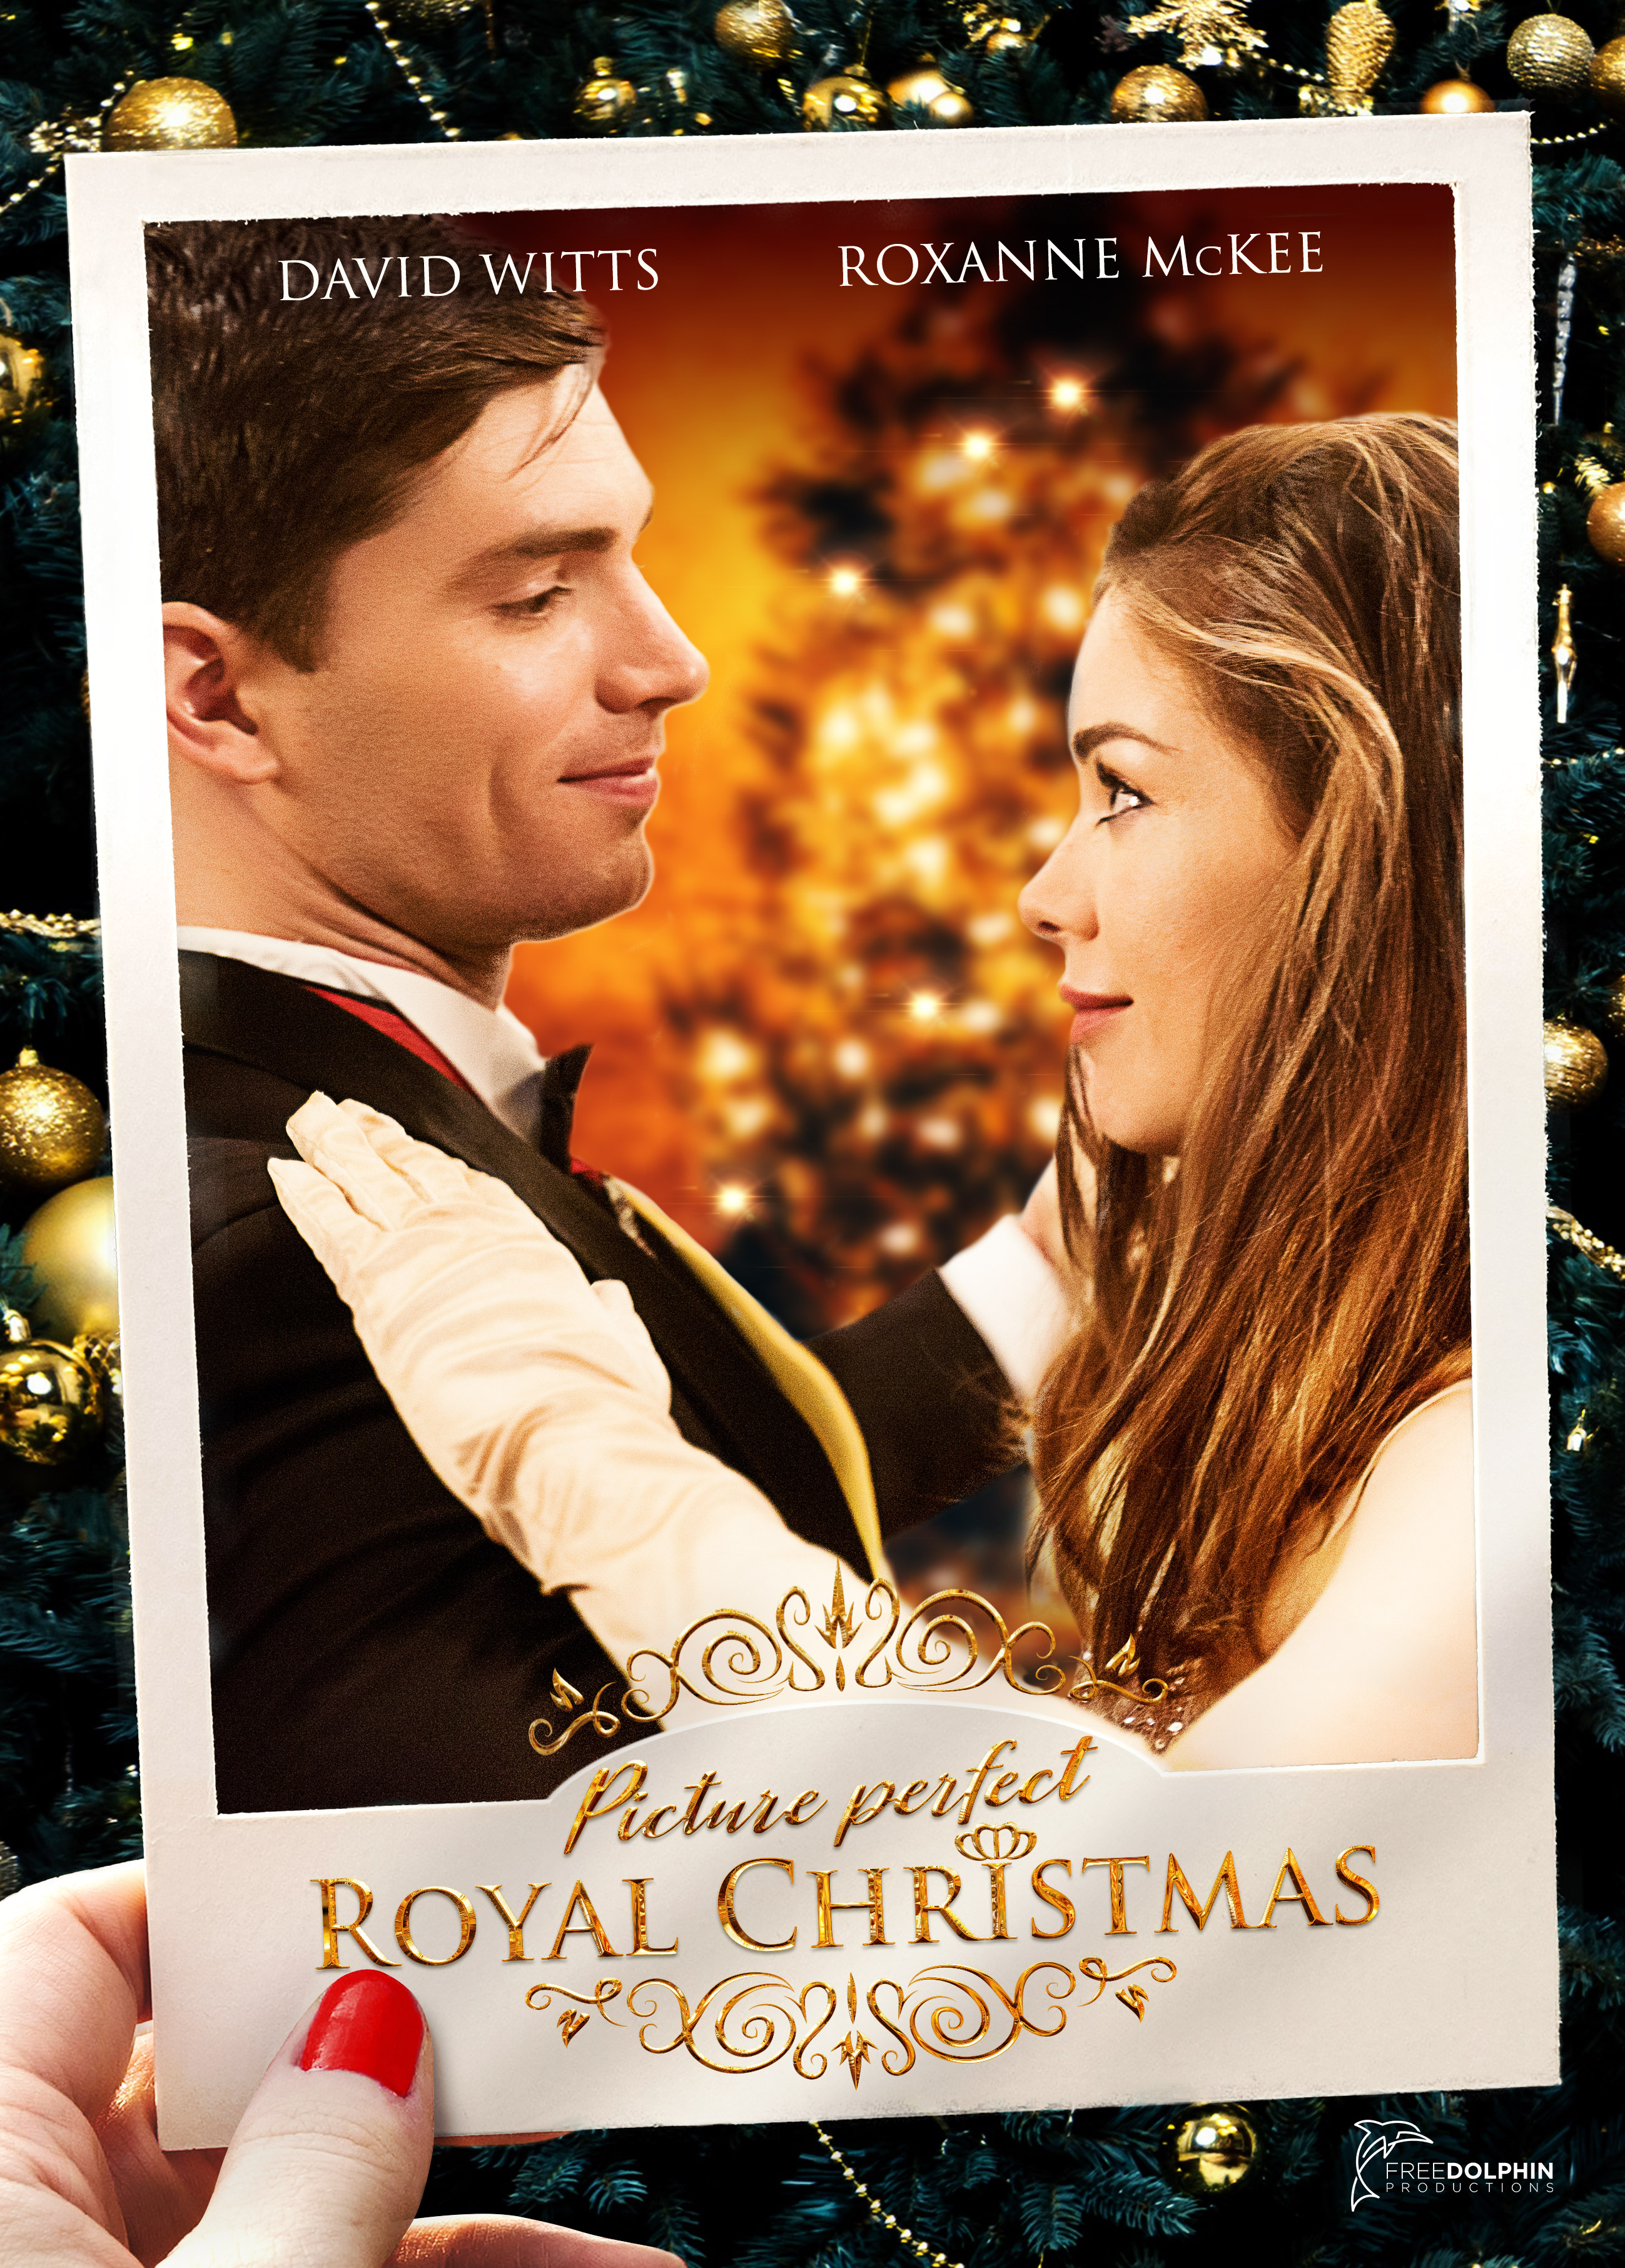 Christmas Moviea 2020 Picture Perfect Royal Christmas (TV Movie 2020)   IMDb